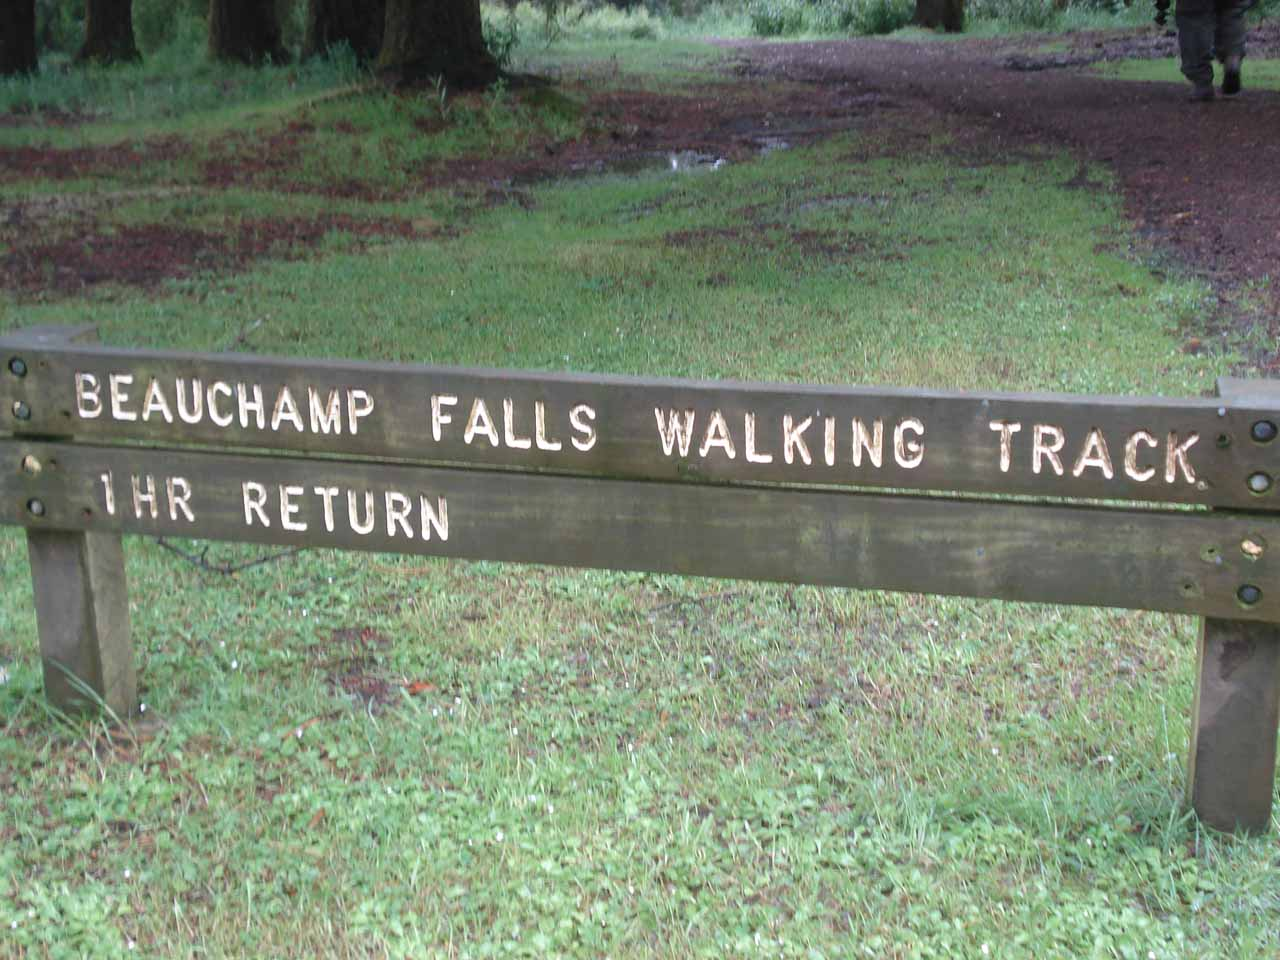 Sign telling us what we were signed up for in order to reach Beauchamp Falls